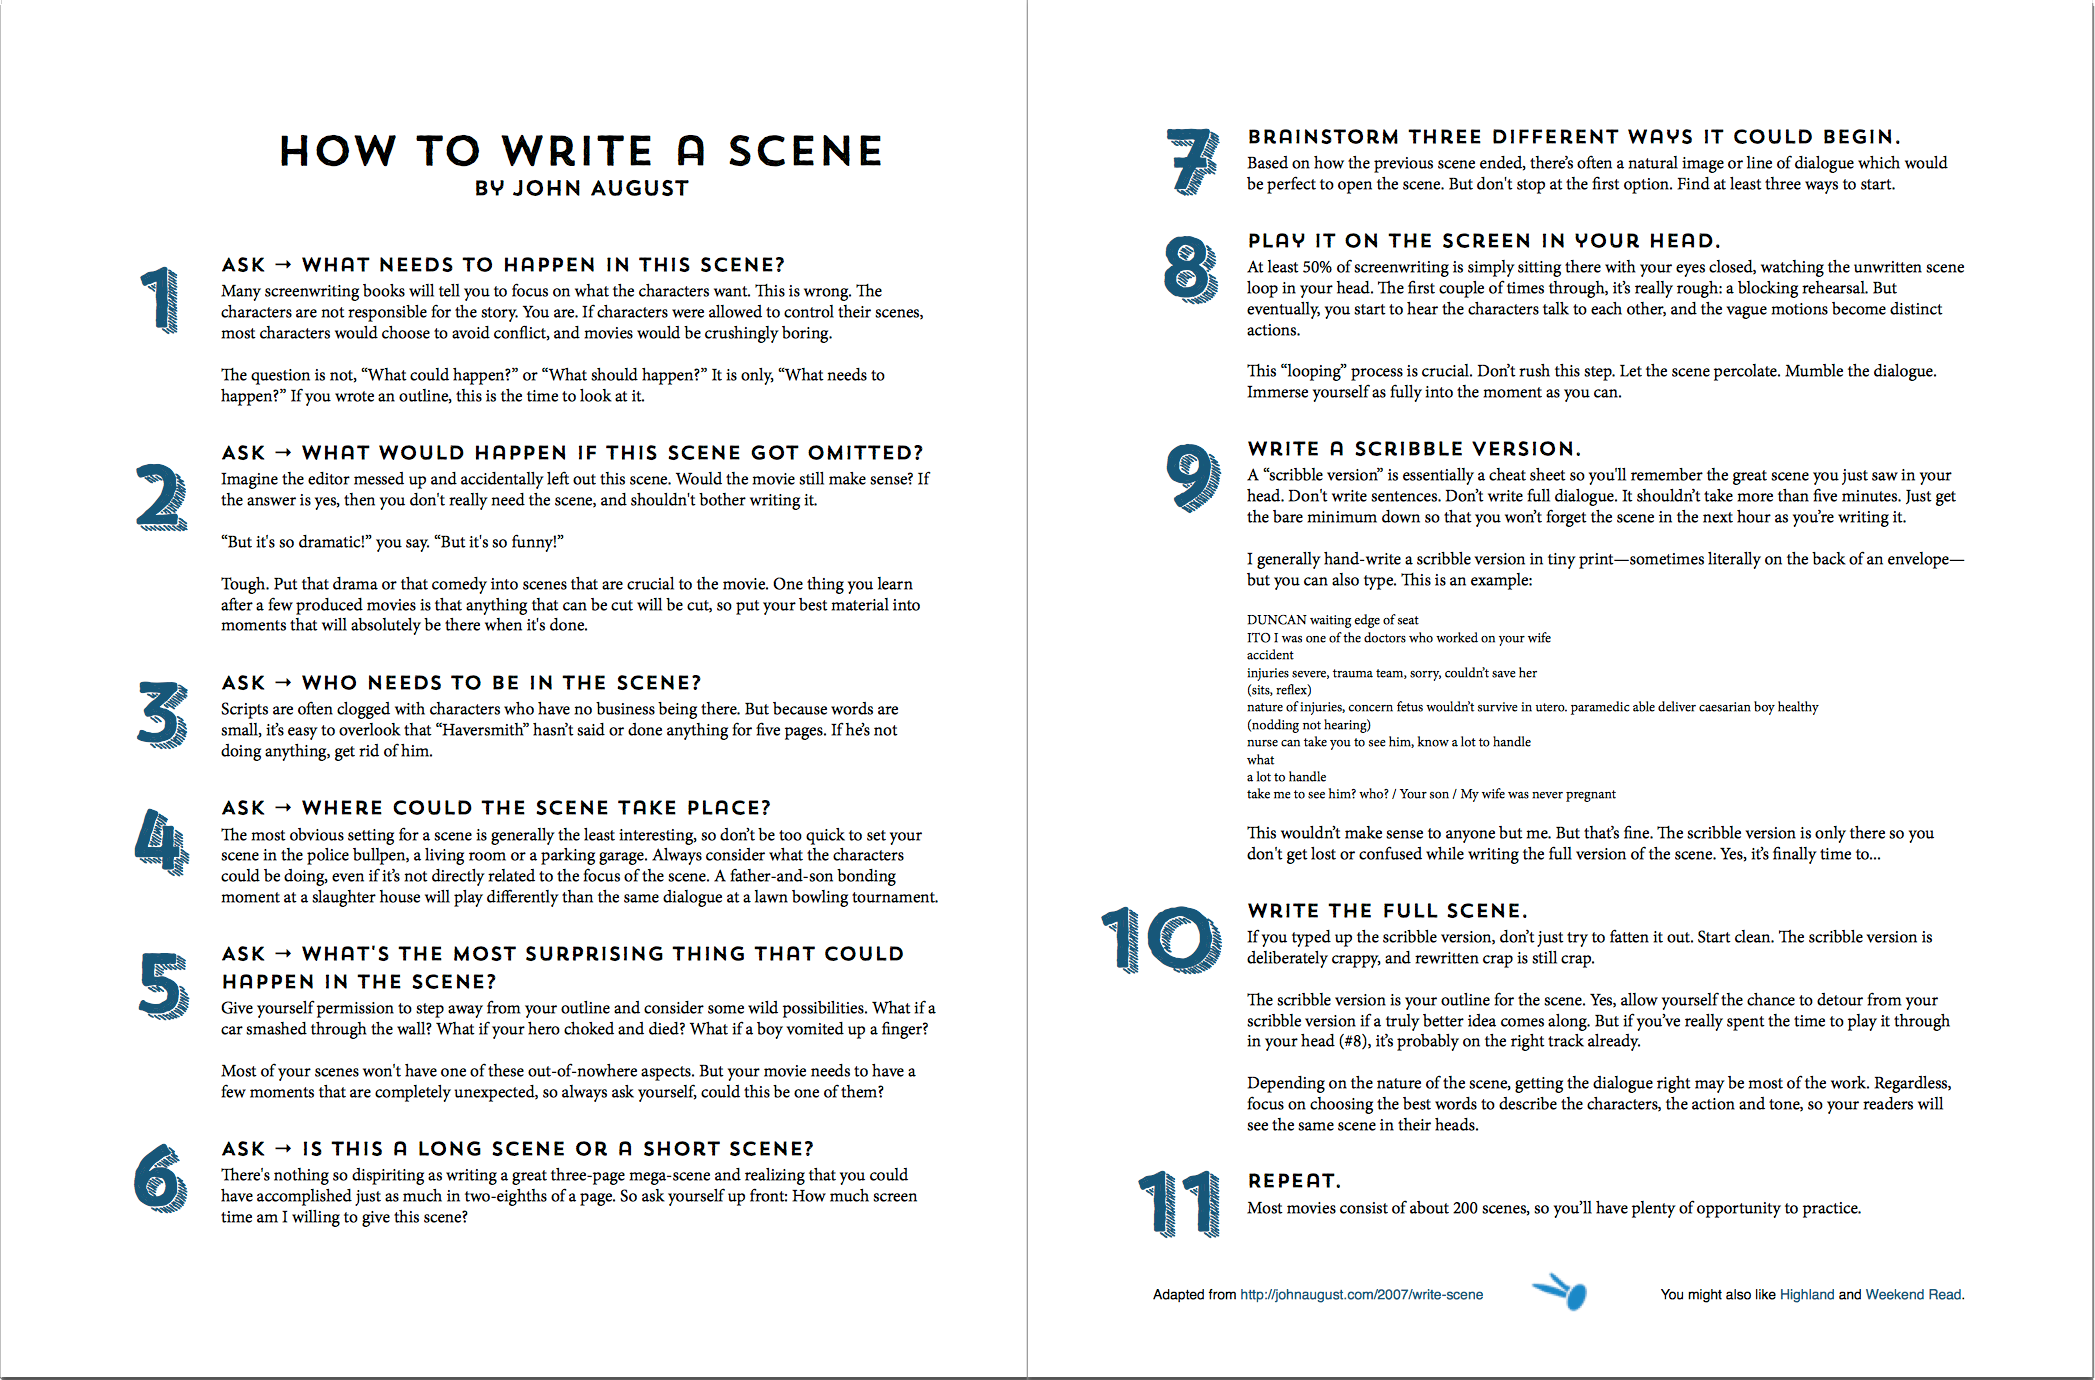 how to write a scene now in handy two page form johnaugust com